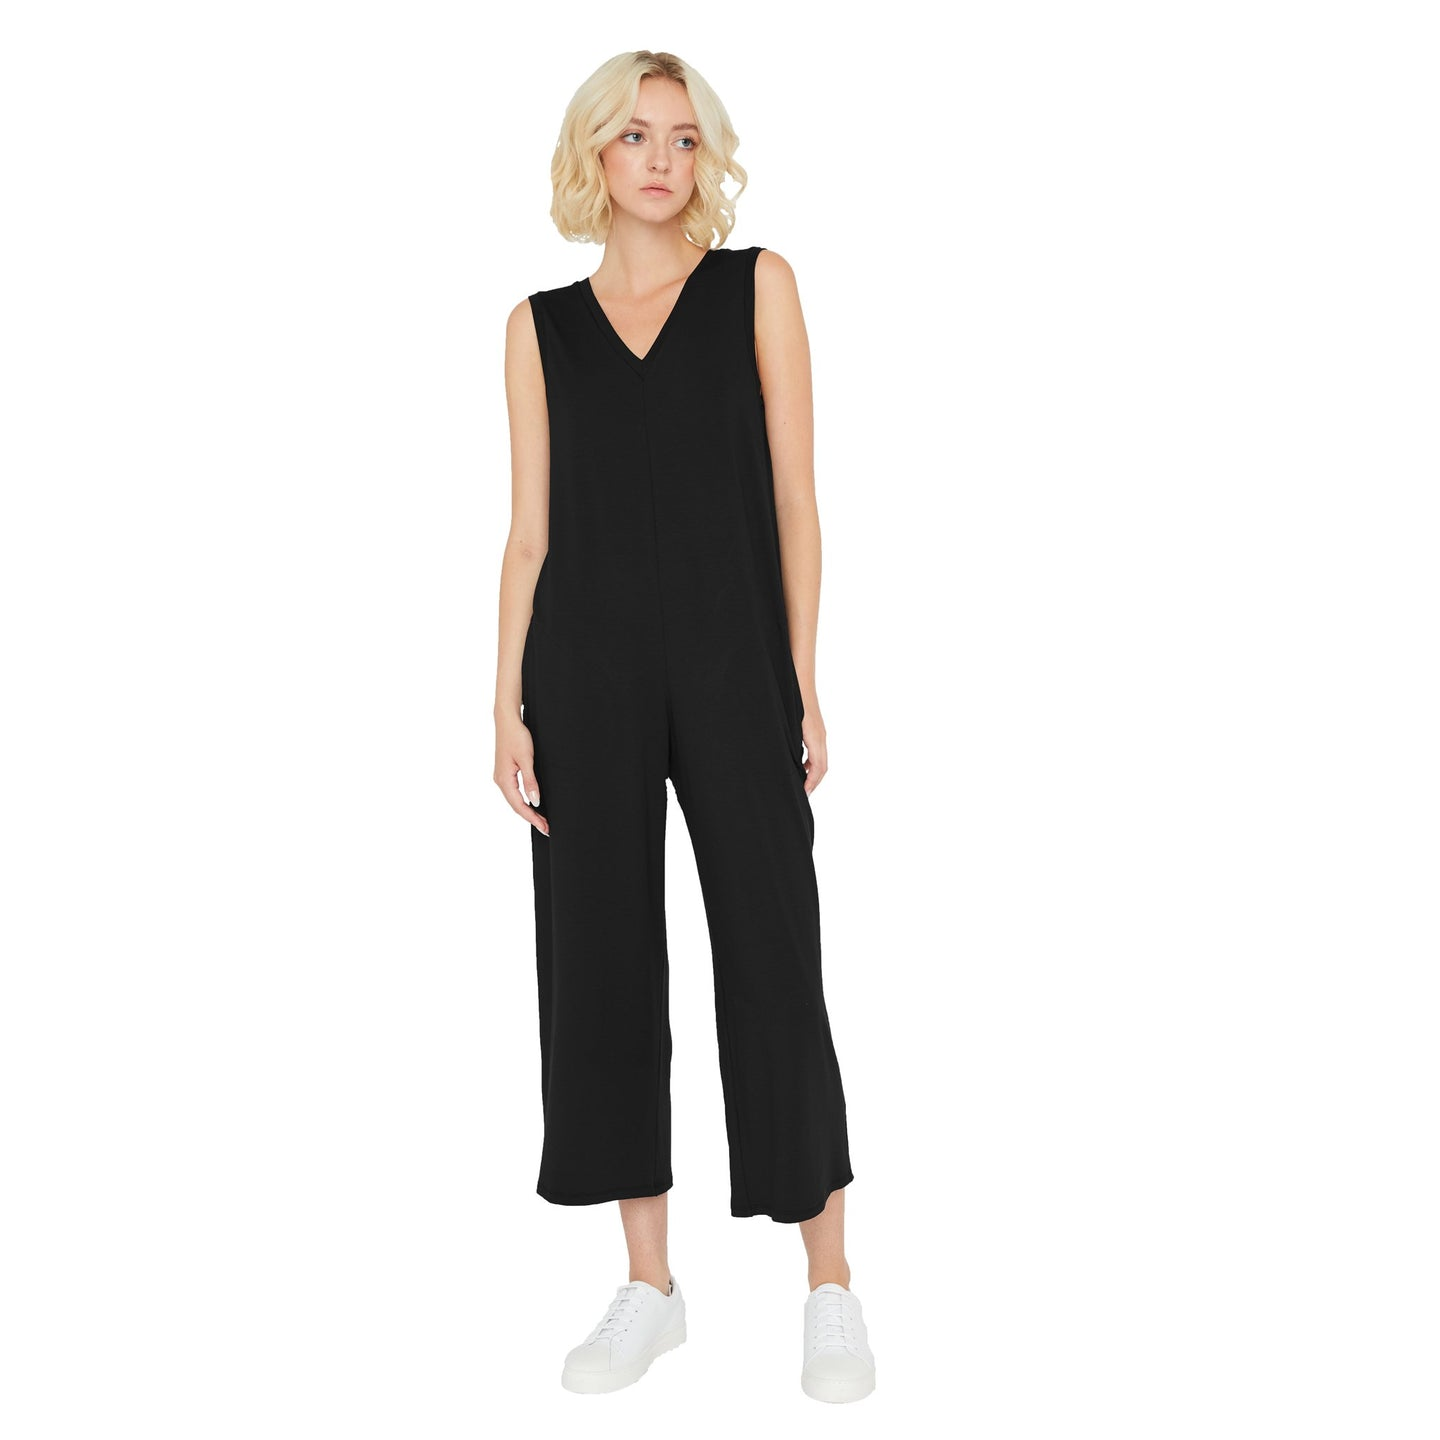 Sarah Liller | Rosaline Jumpsuit in Black